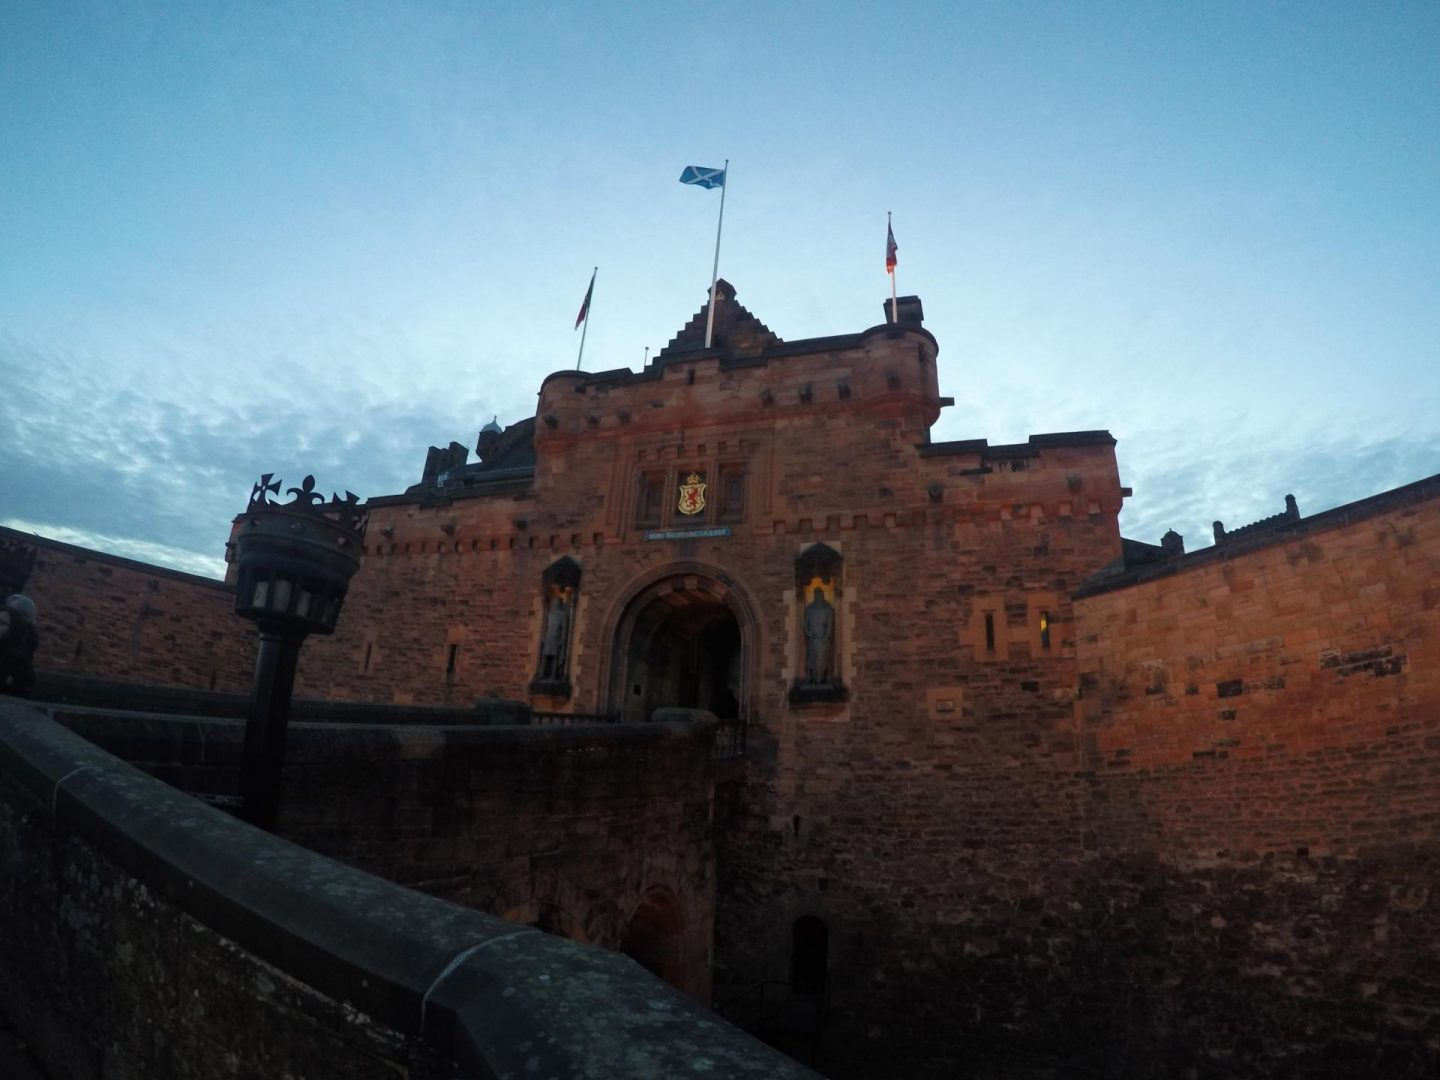 edinburgh-in-32-hours-edinburgh-castle-rachel-nicole-uk-travel-blogger-3